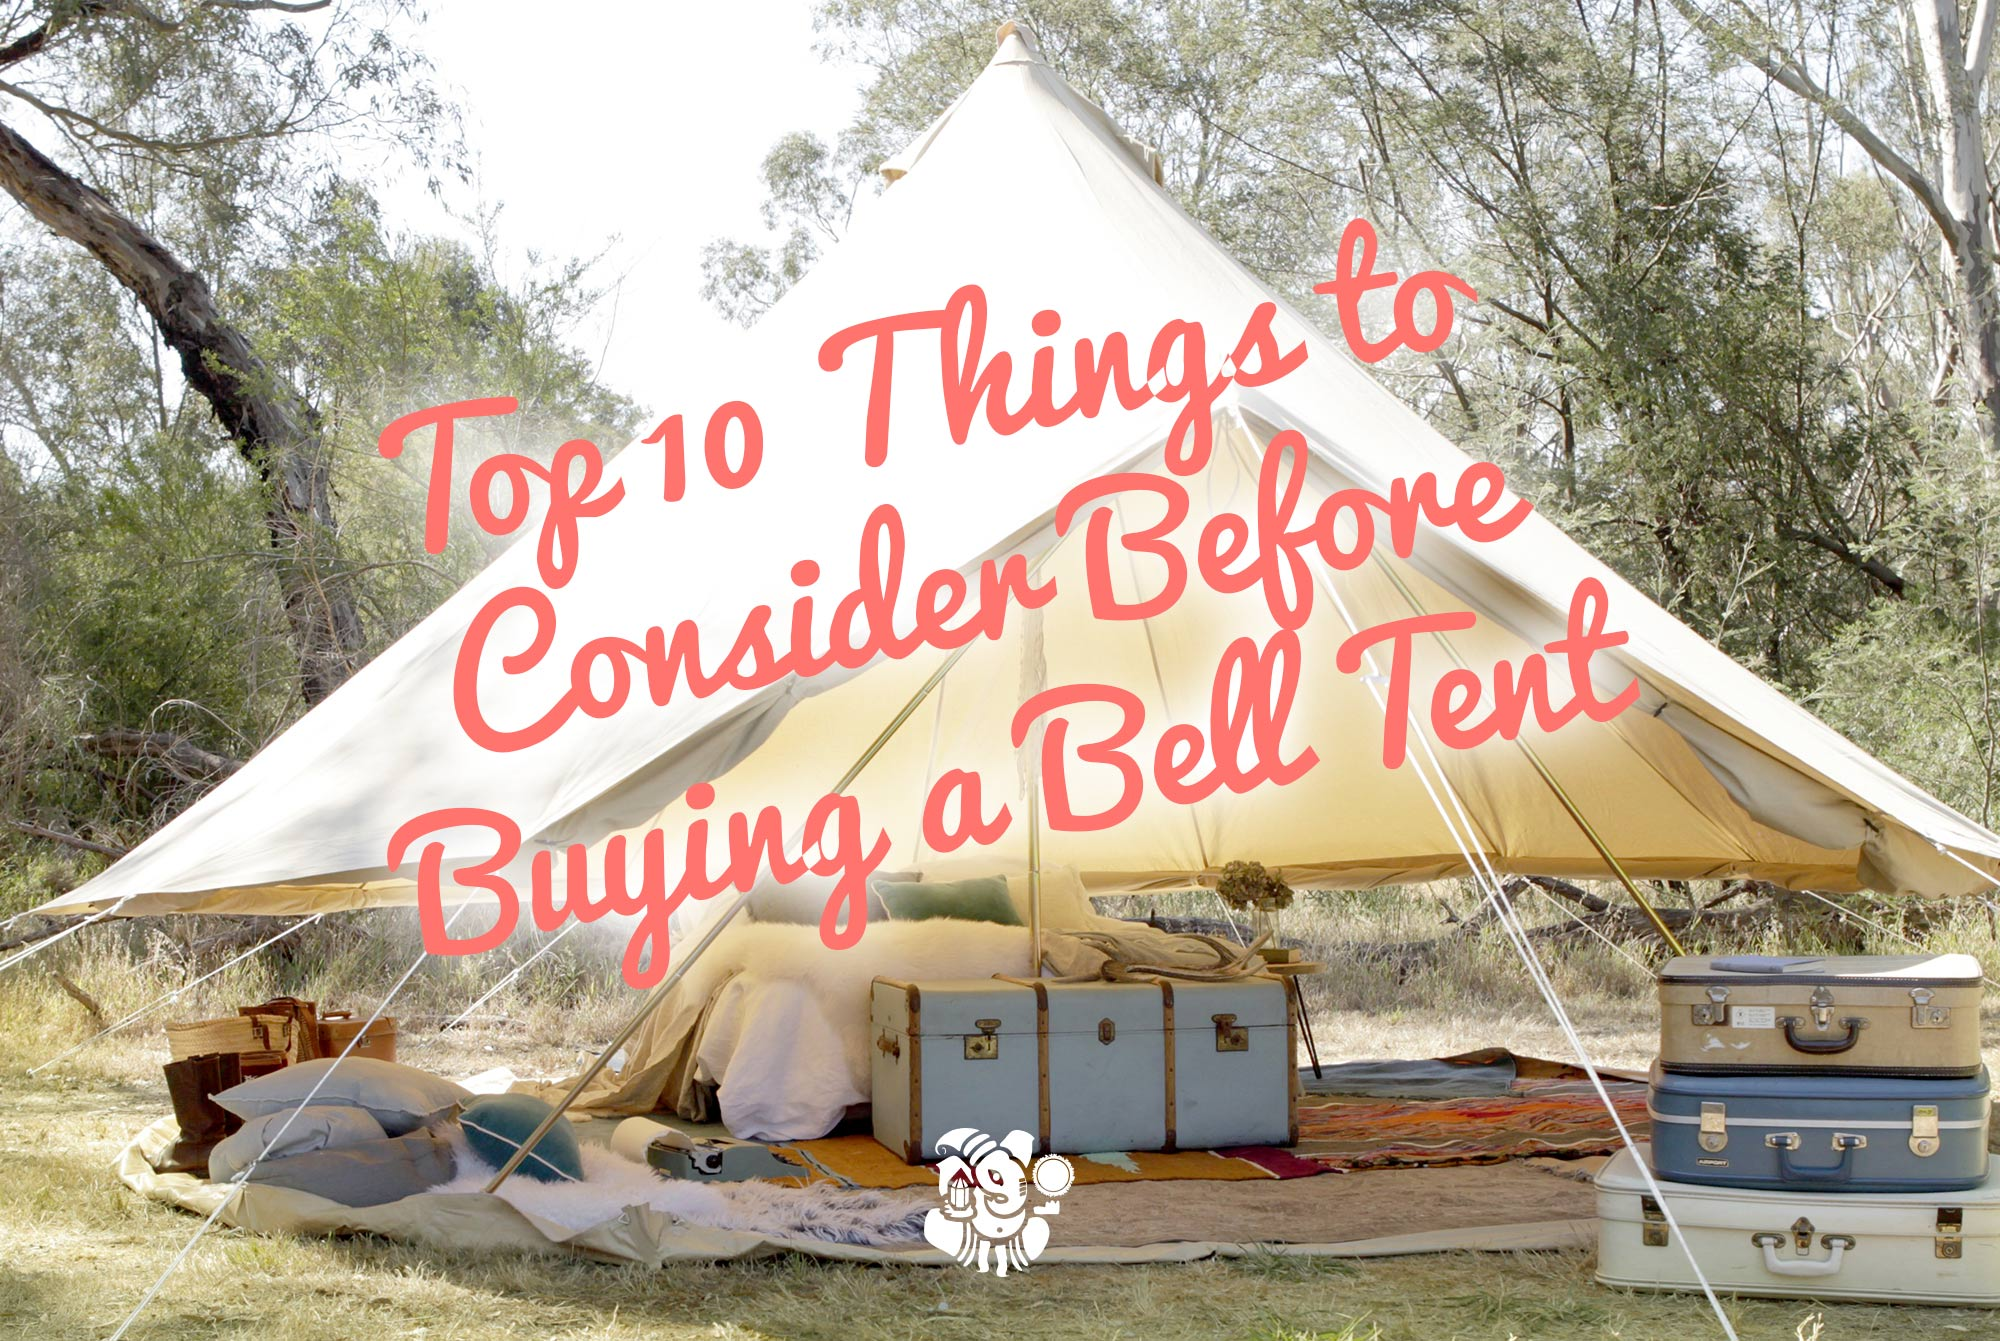 Top 10 things to consider before buying a bell tent